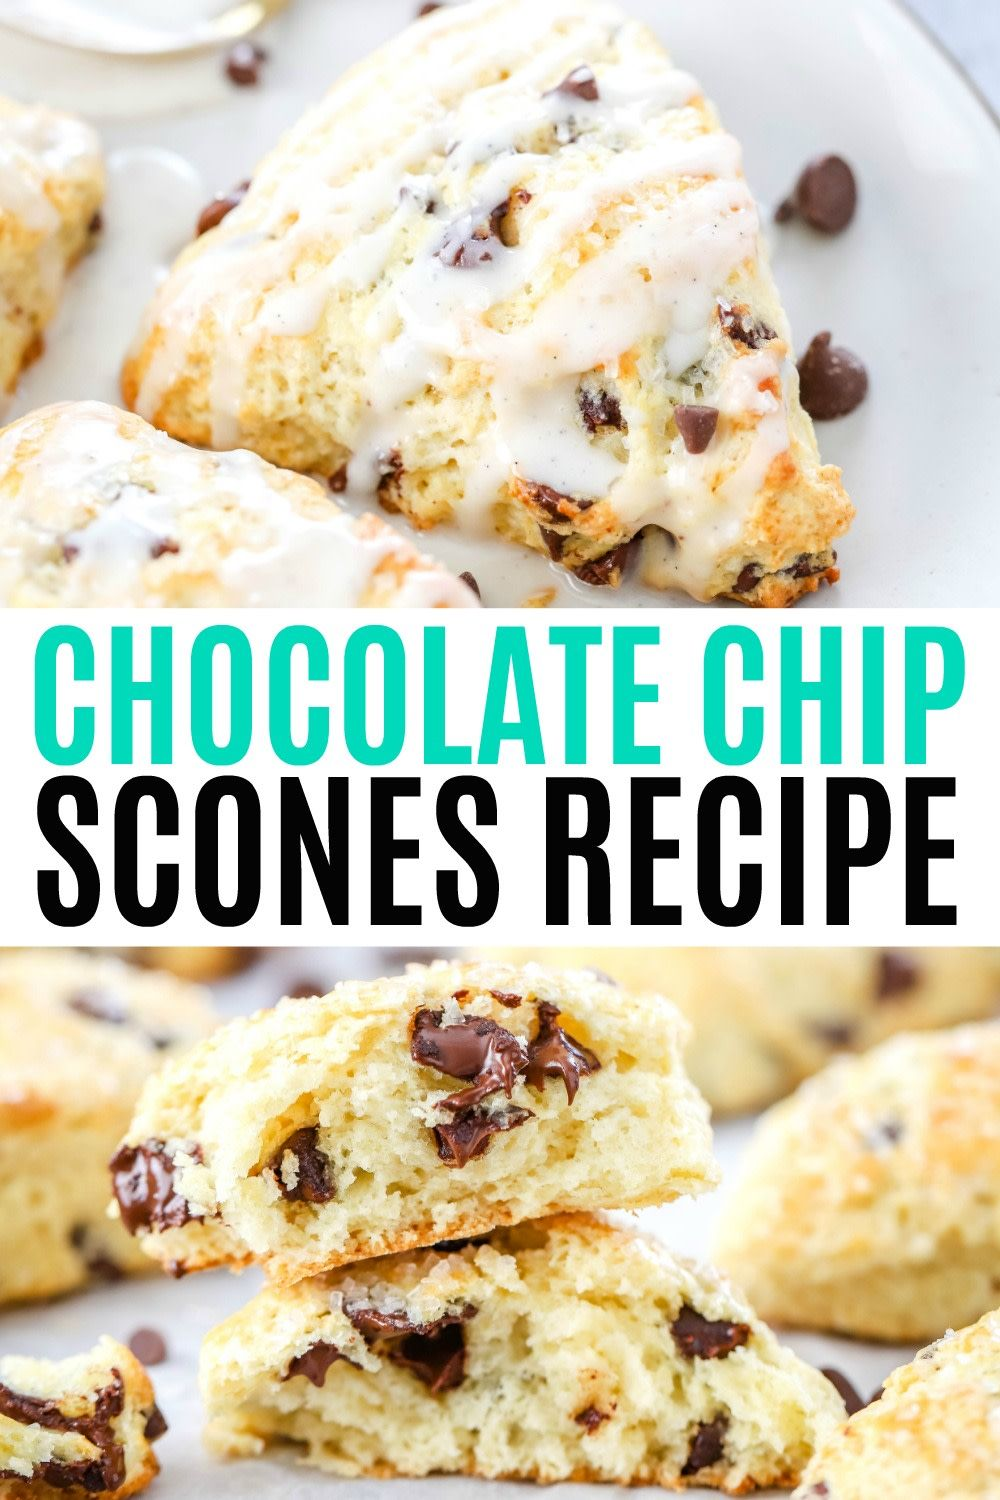 These Are The Perfect Chocolate Chip Scones Tender Buttery Studded With Chocolate Chips An Chocolate Scones Recipe Scones Chocolate Chips Buttermilk Recipes